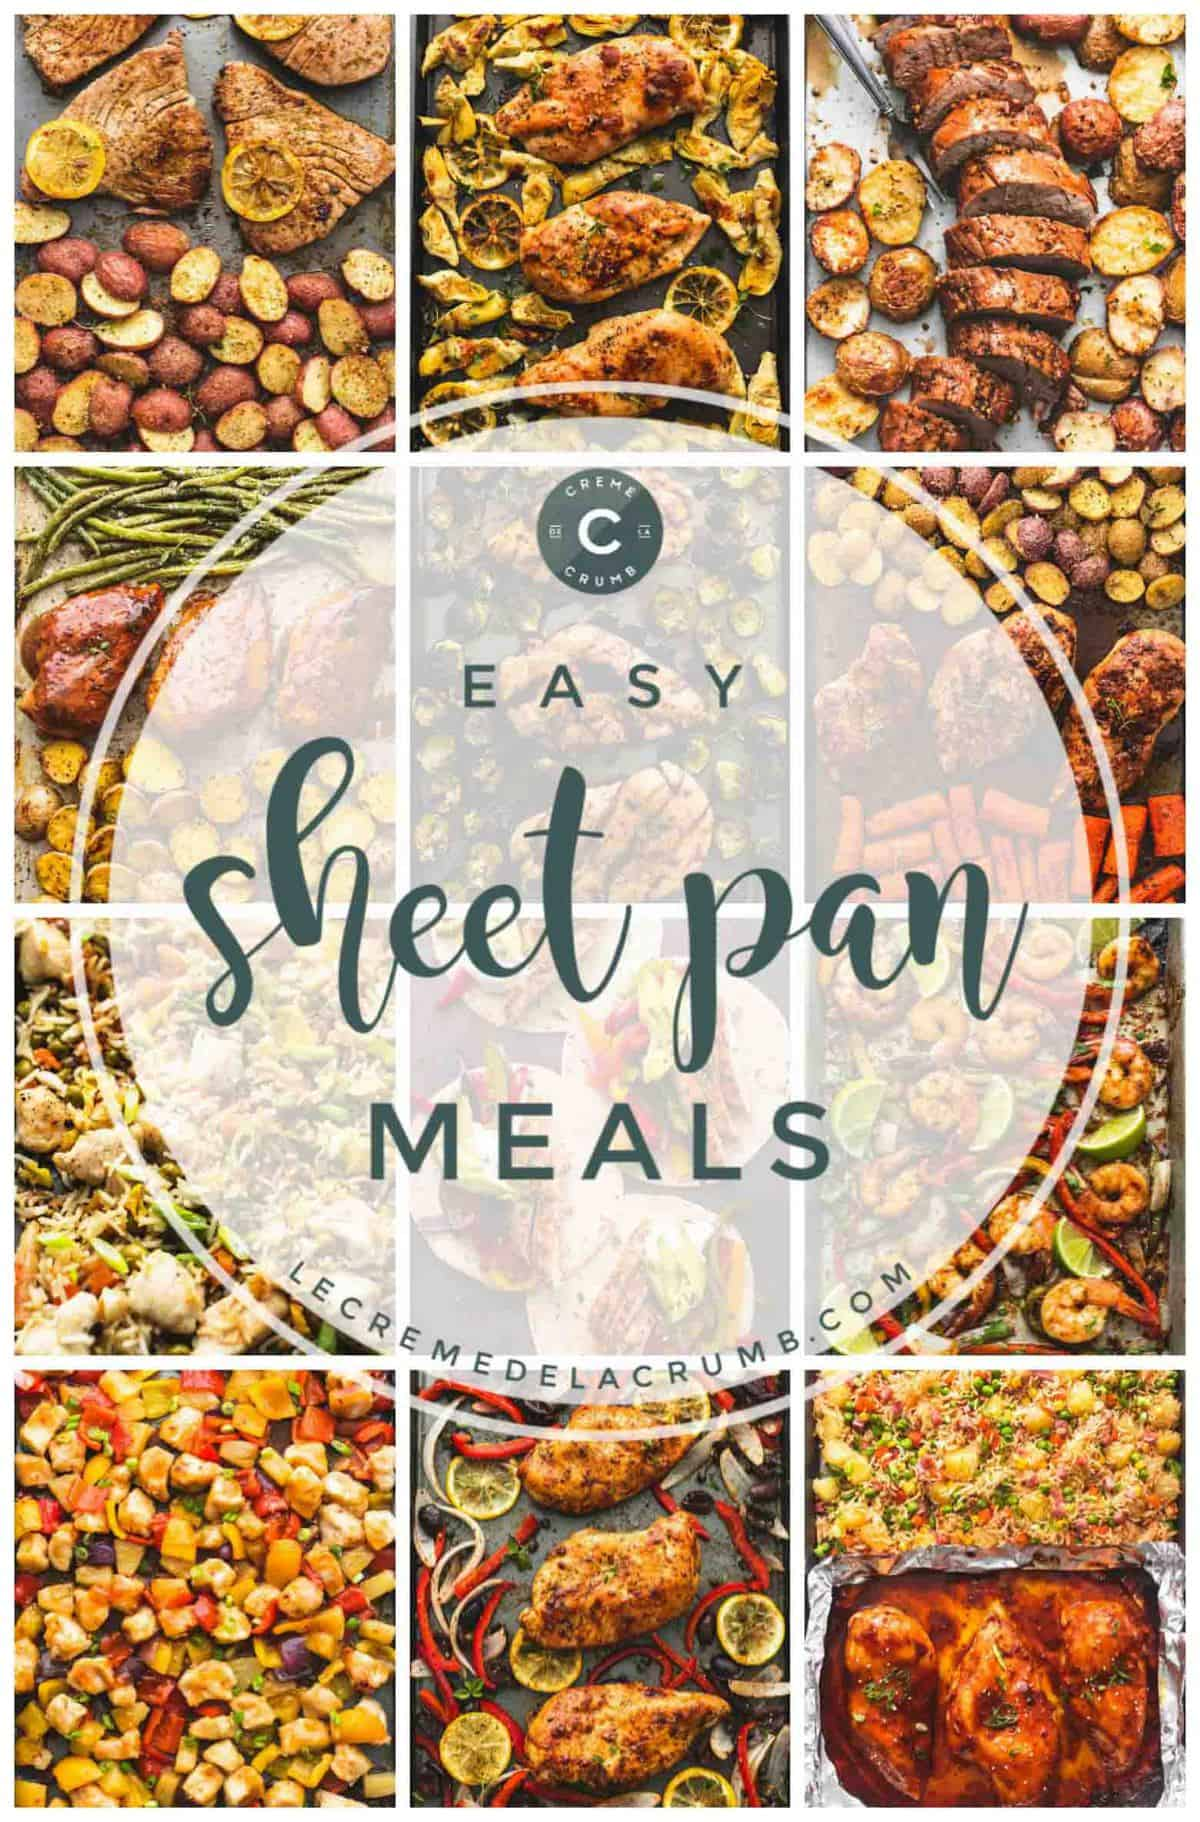 12 Easy and Tasty Family-friendly Sheet Pan Meal Recipes | lecremedelacrumb.com